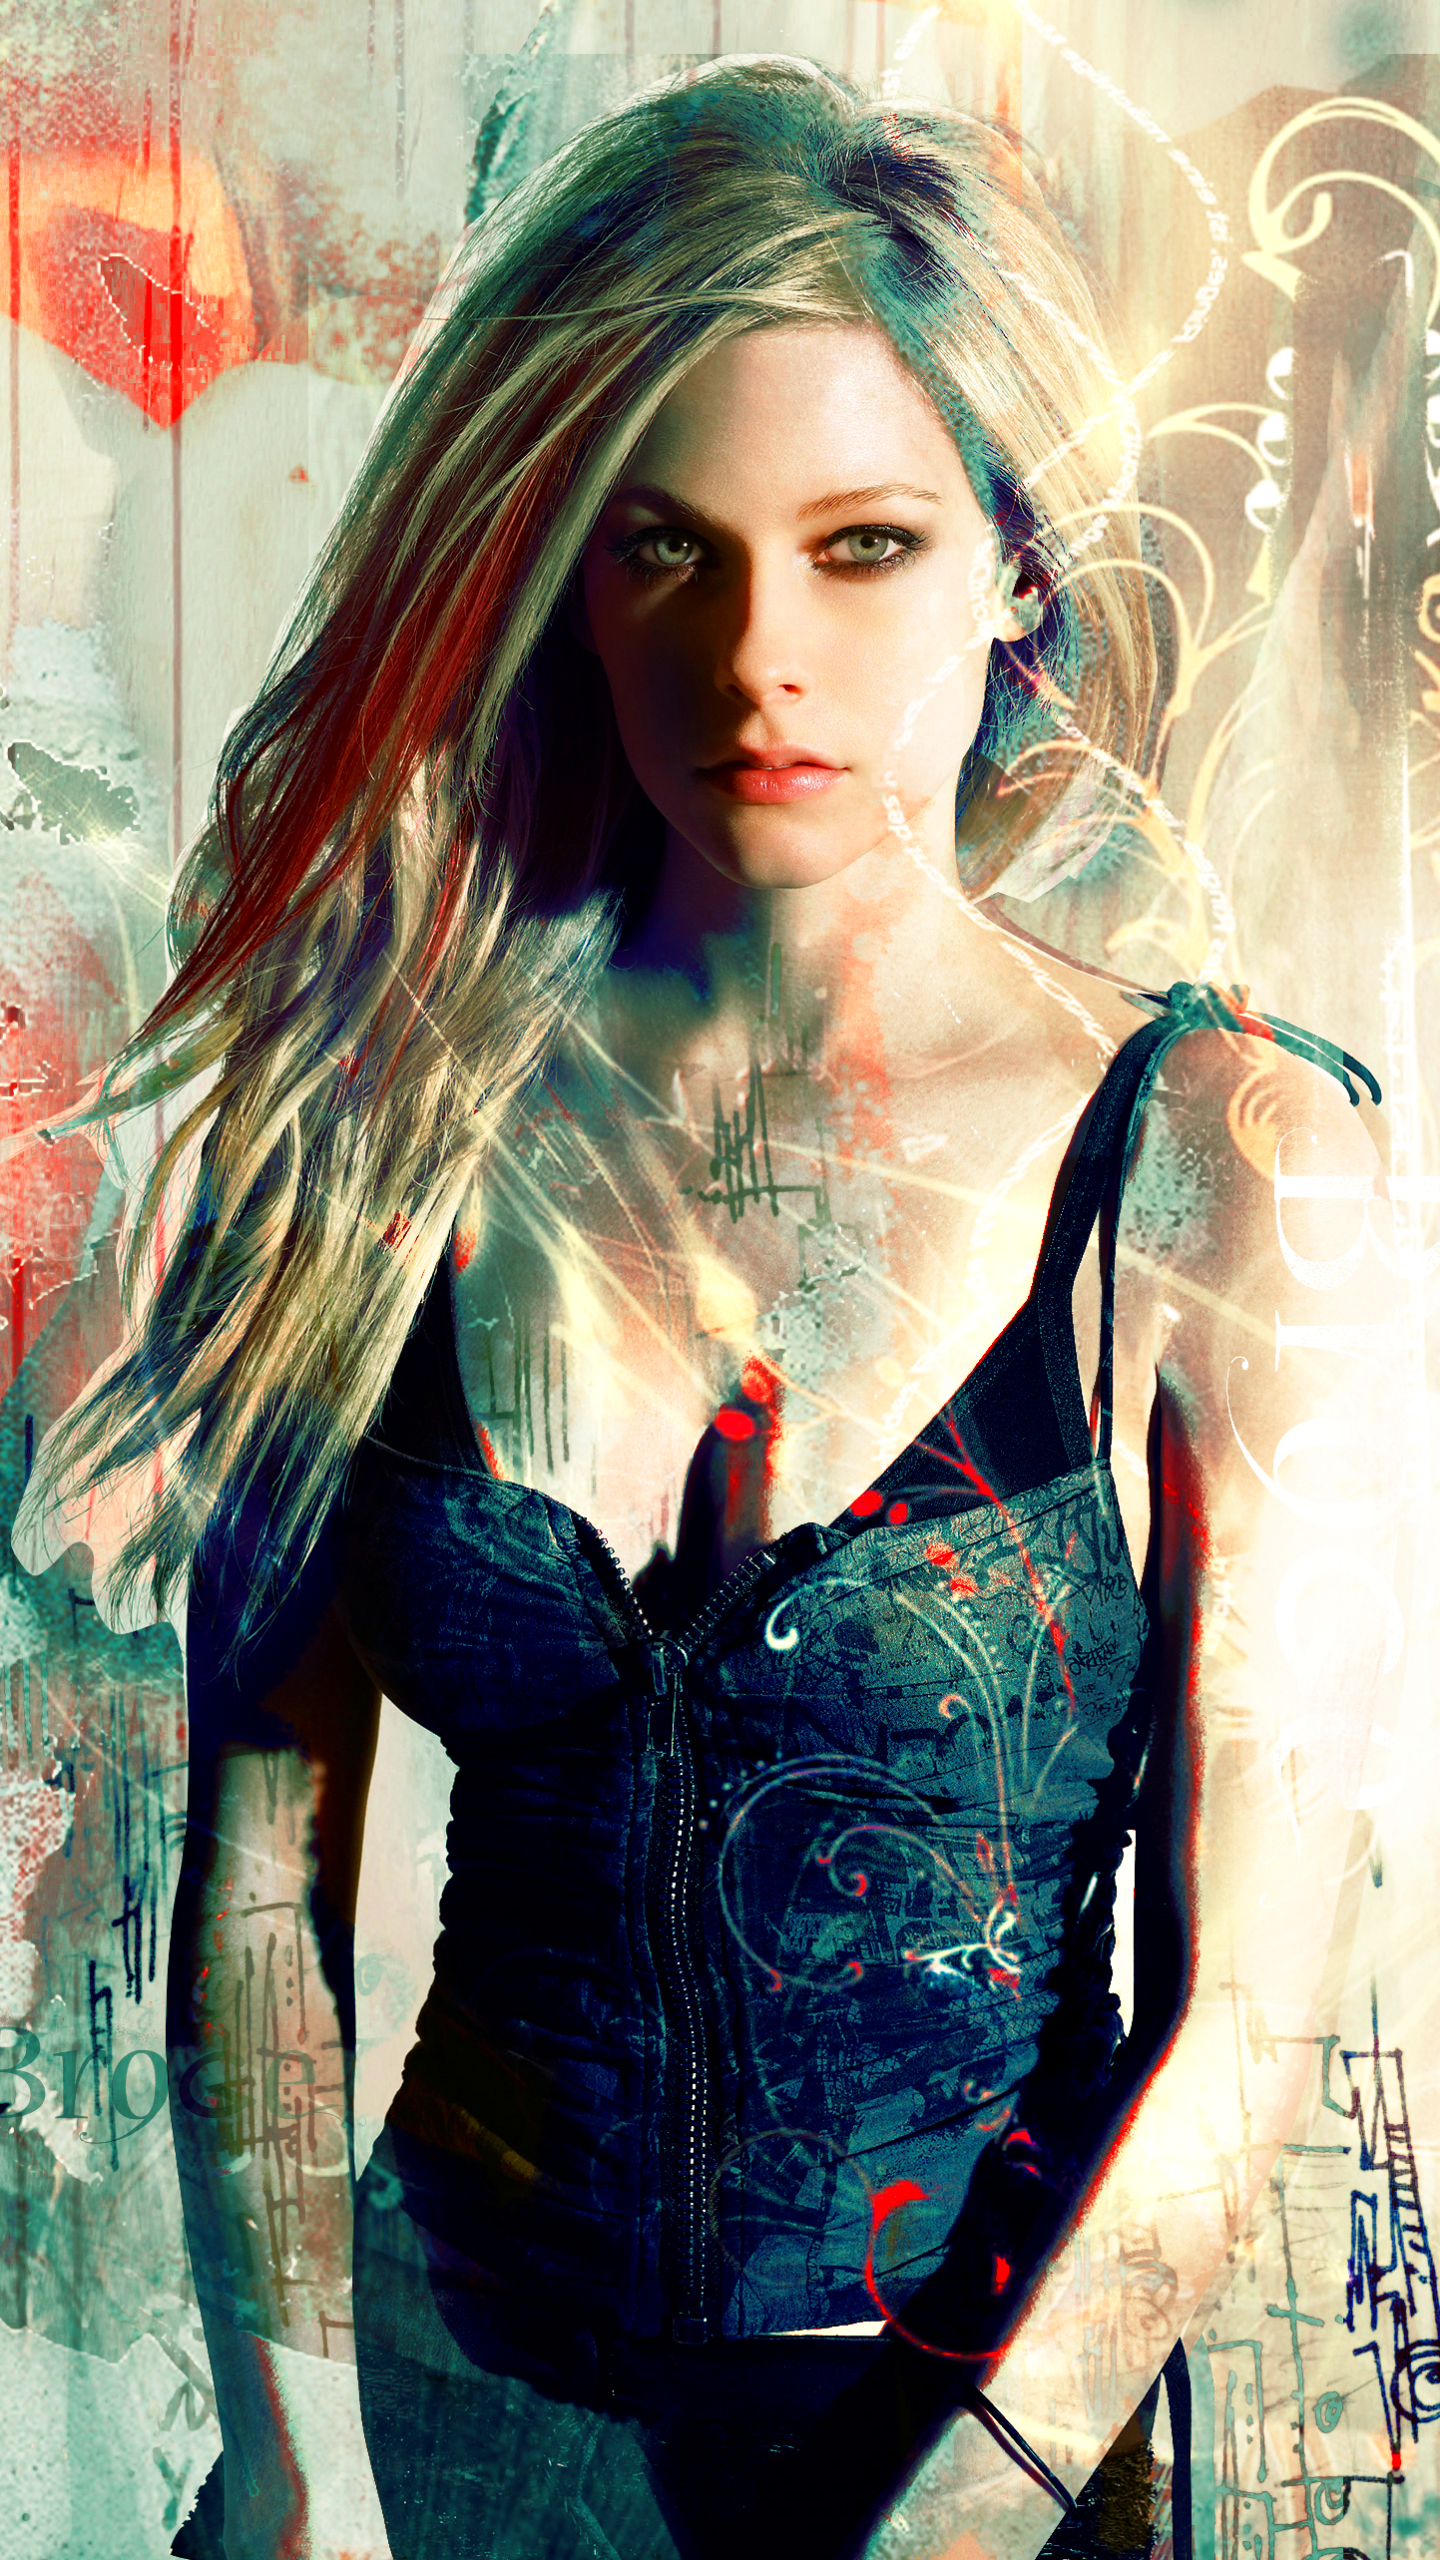 Music Avril Lavigne 1440x2560 Wallpaper Id 748749 Mobile Abyss